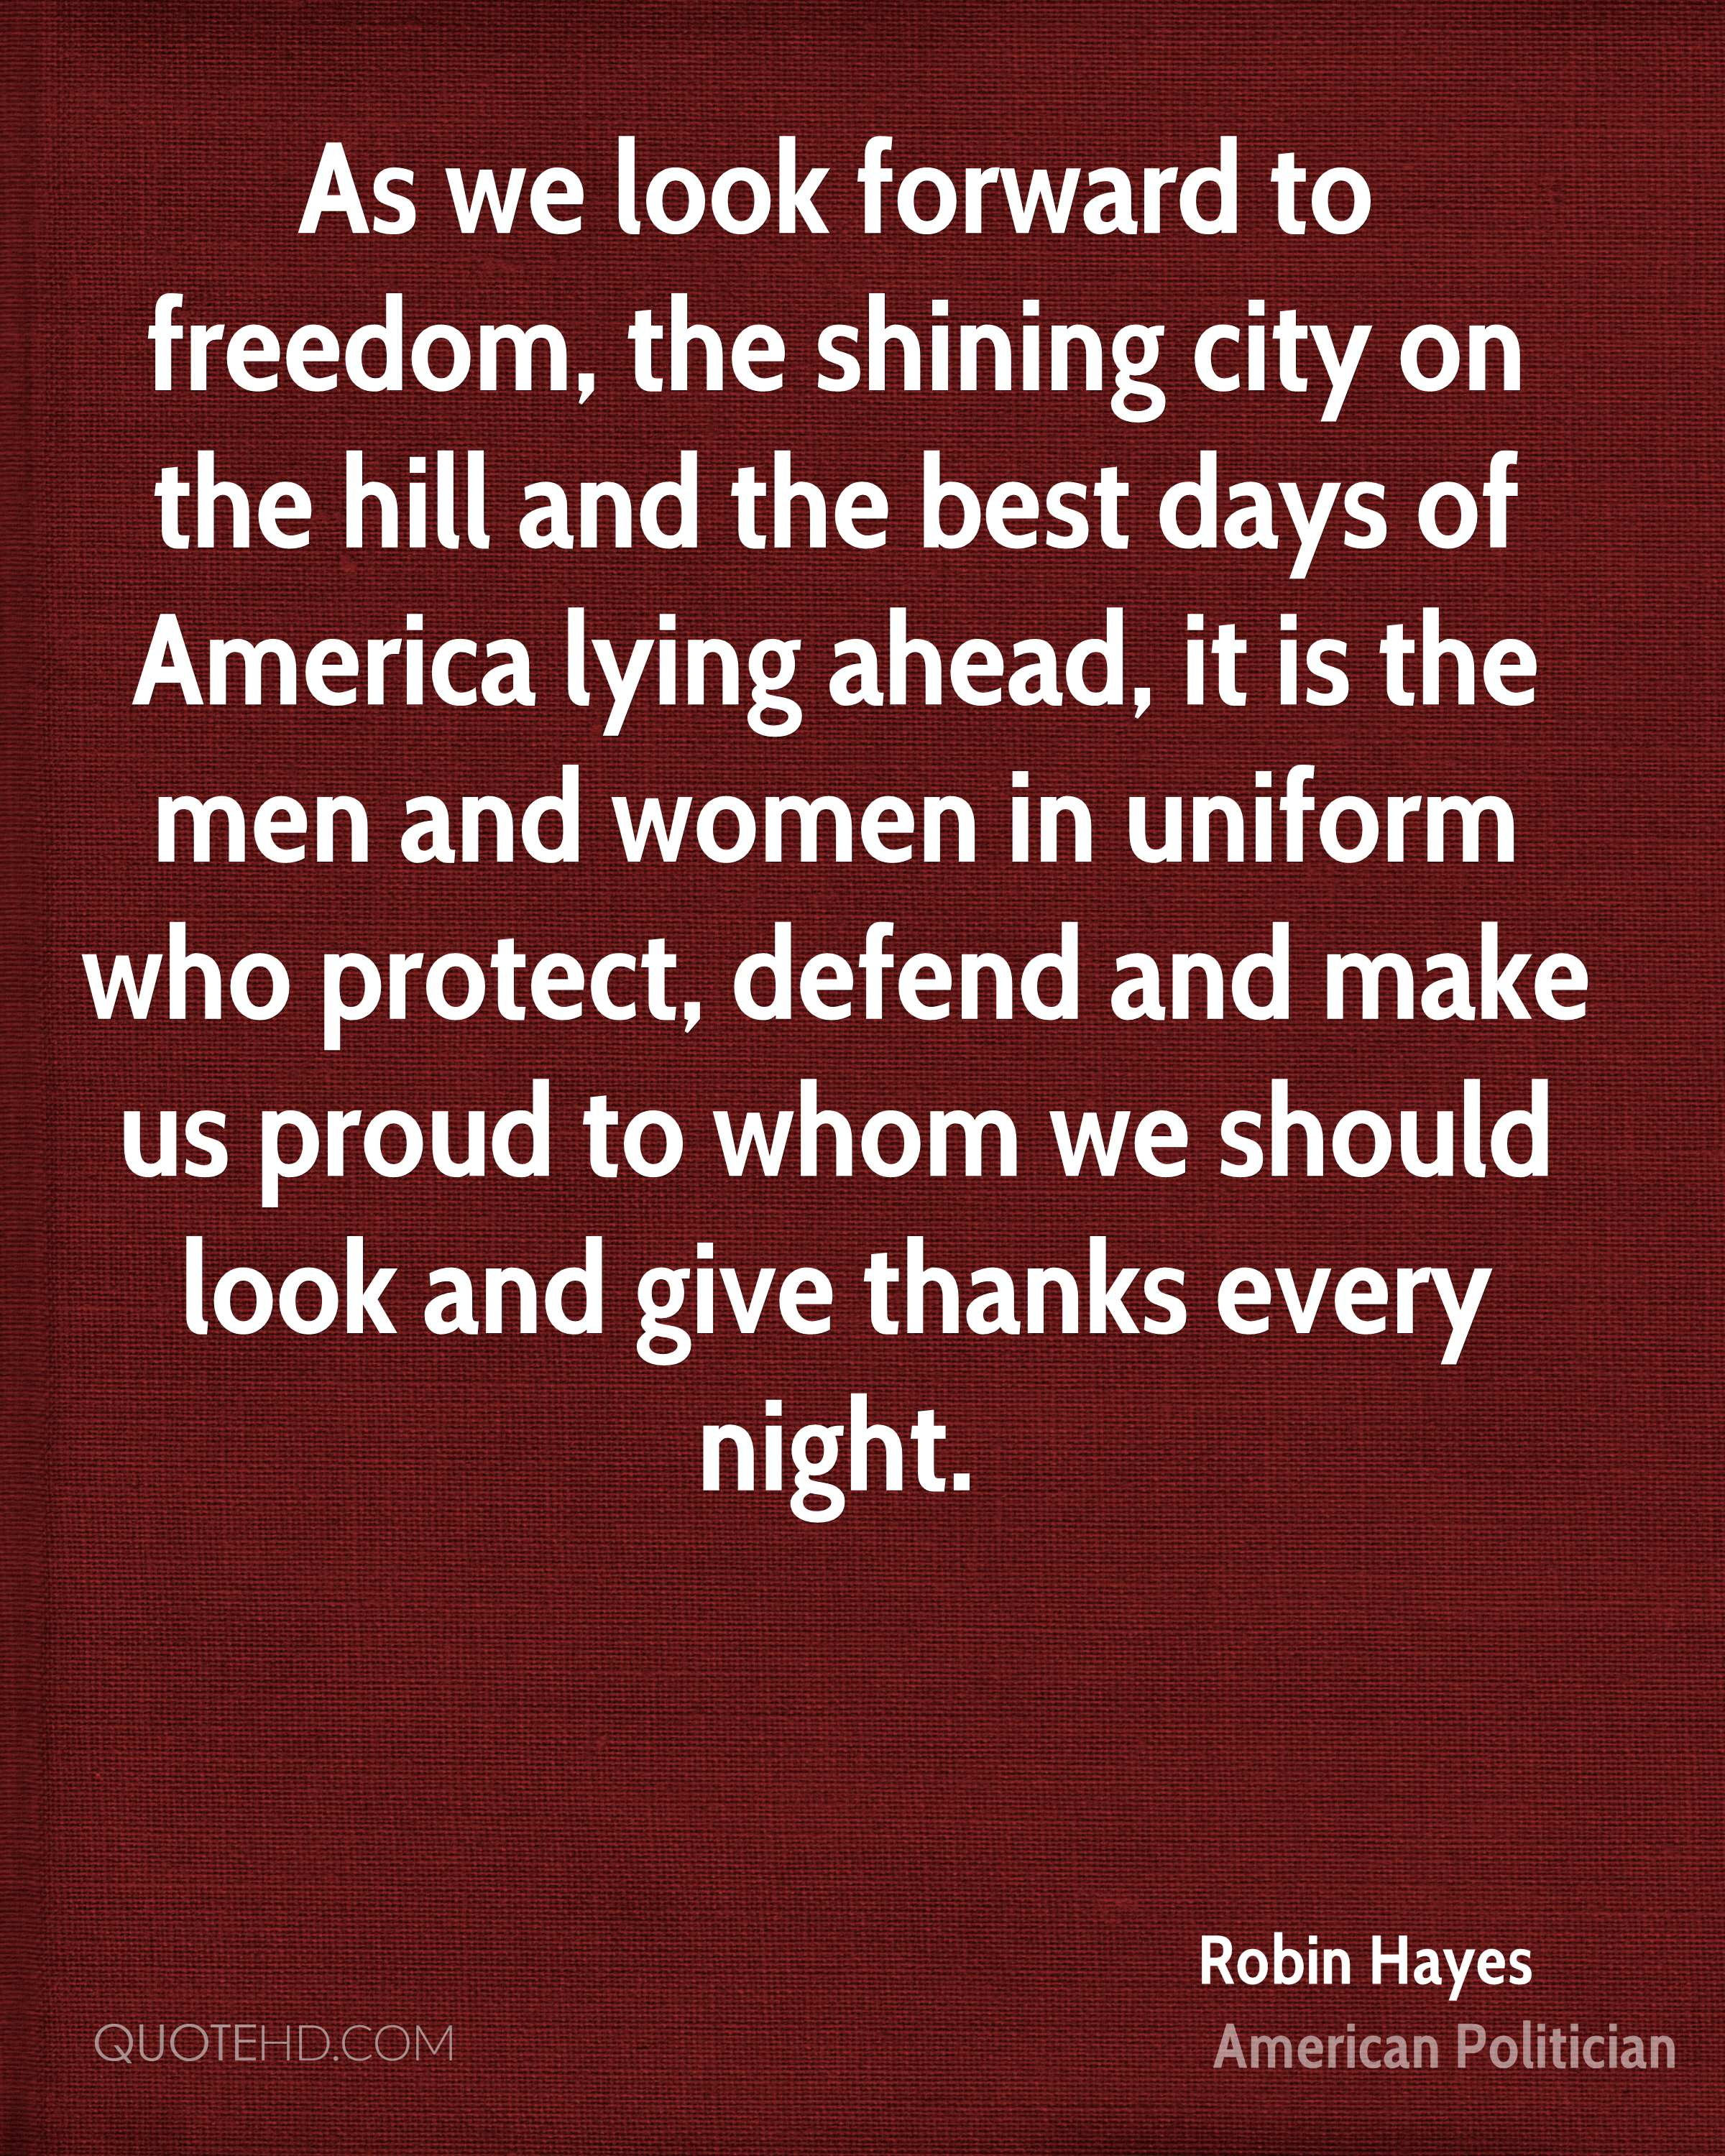 As we look forward to freedom, the shining city on the hill and the best days of America lying ahead, it is the men and women in uniform who protect, defend and make us proud to whom we should look and give thanks every night.